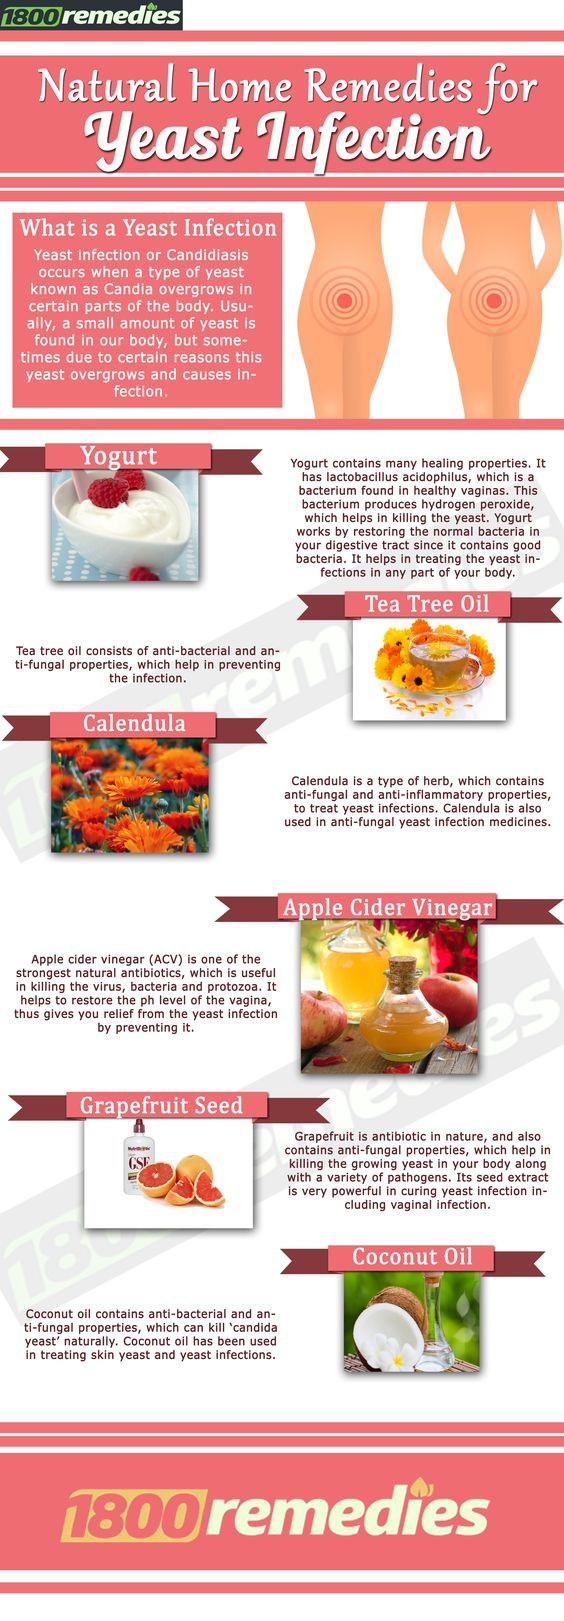 Natural Home Remedies for Treating Yeast Infection Generally, anti-fungal medicines are there for treating treat yeast infection, but the question is how often you will take medicines if you are suffering from recurrent yeast infections. These medicines are not safe to use during pregnancy for treating your yeast infection as it may cause birth defects.